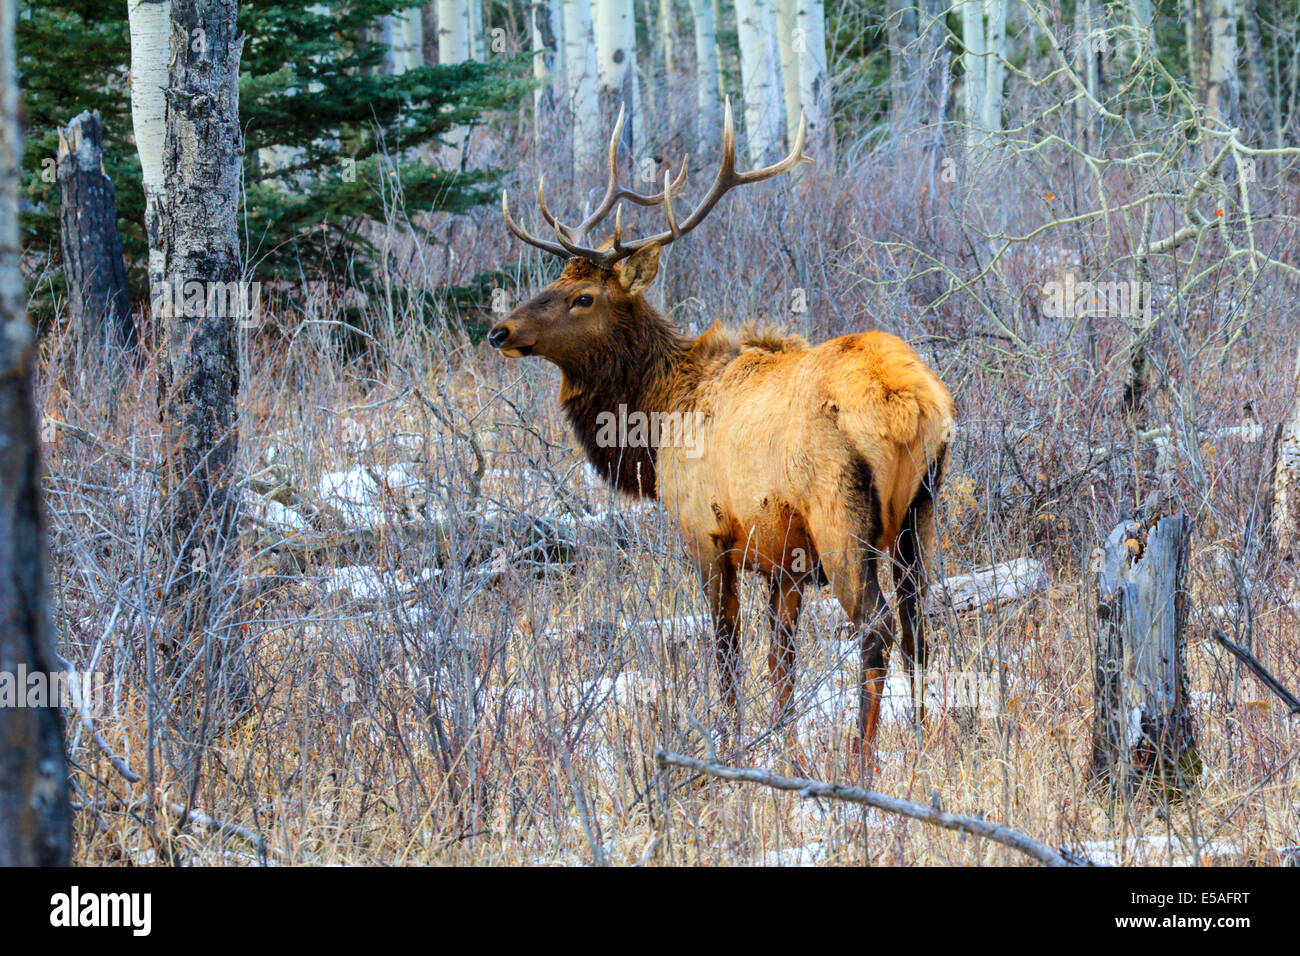 40,914.04394 Bull elk with head up looking sideways, big trophy antlers, standing in a winter snowy aspen and conifer - Stock Image